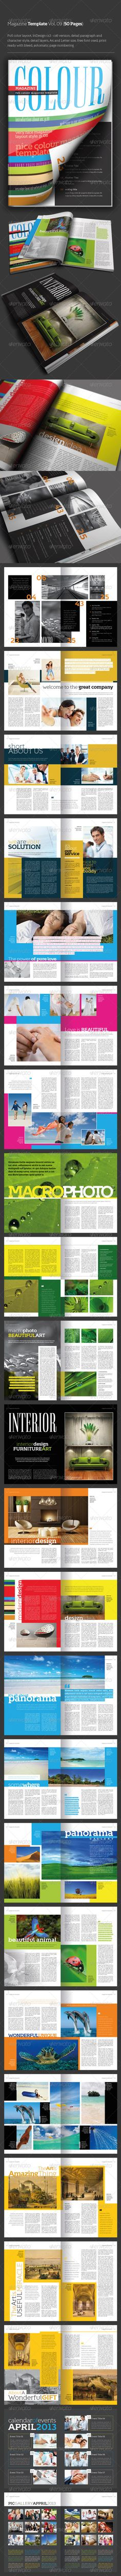 InDesign Magazine Template Vol. 09 (50 pages) - GraphicRiver Item for Sale